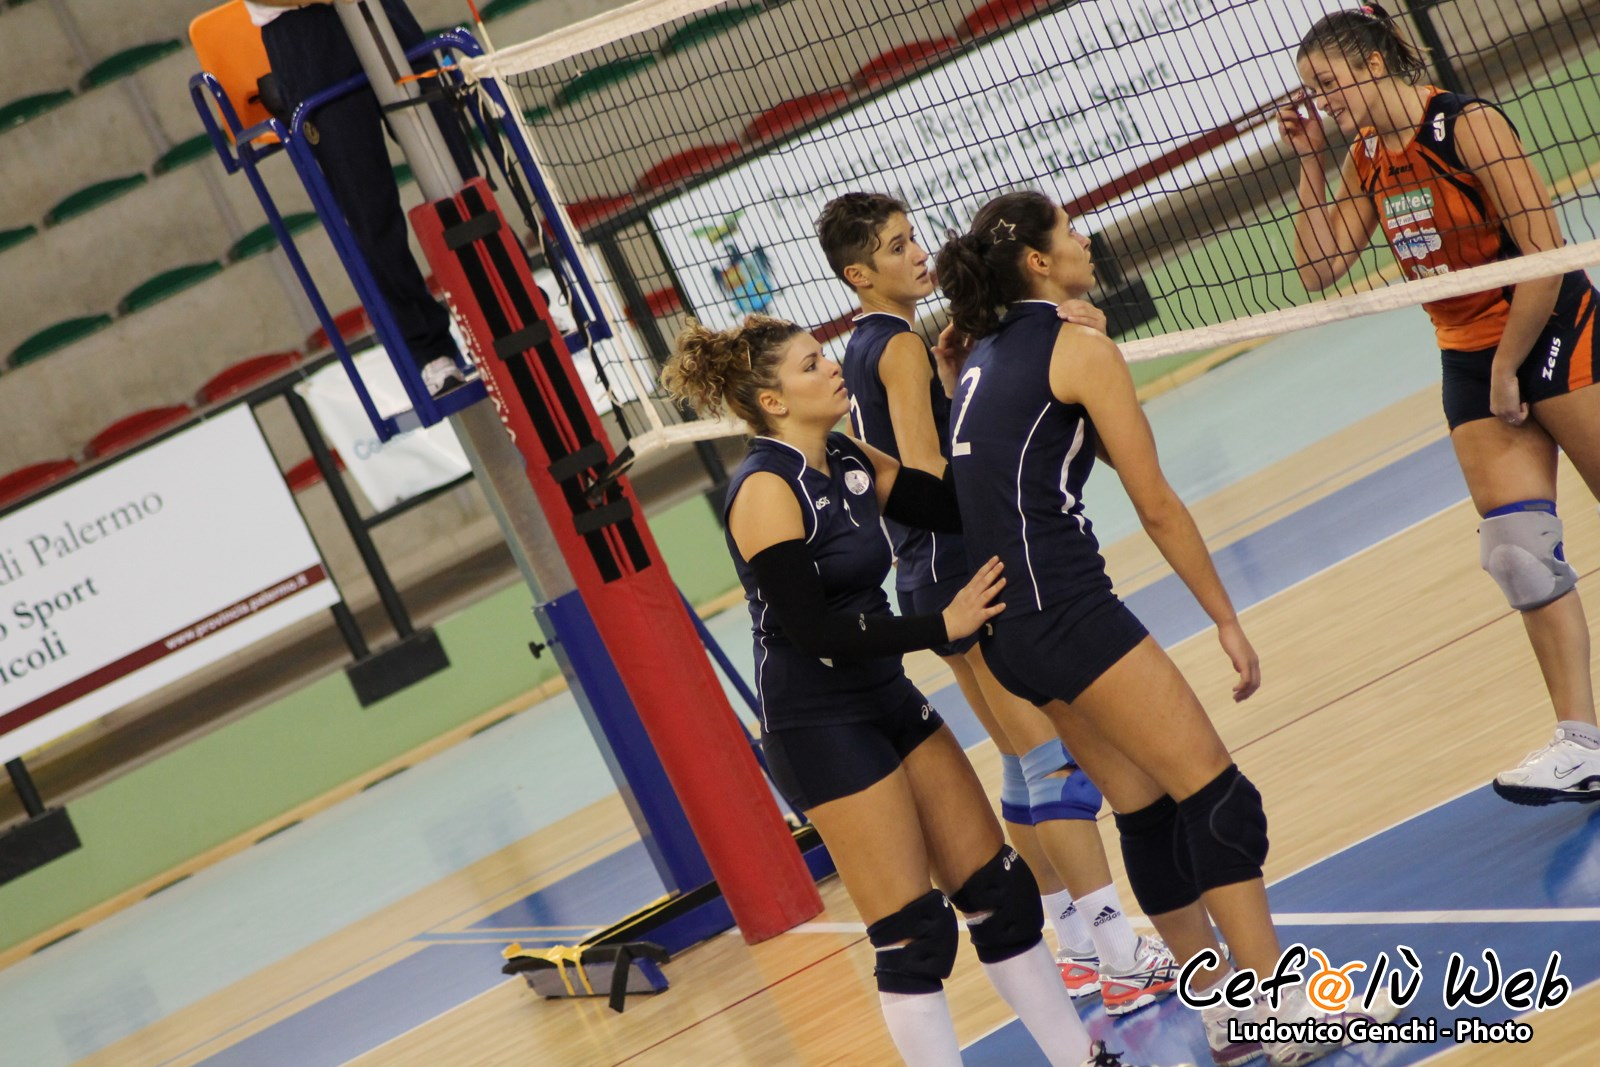 La Costaverde Volley vola: 3-0 all'Irritec Stefanese